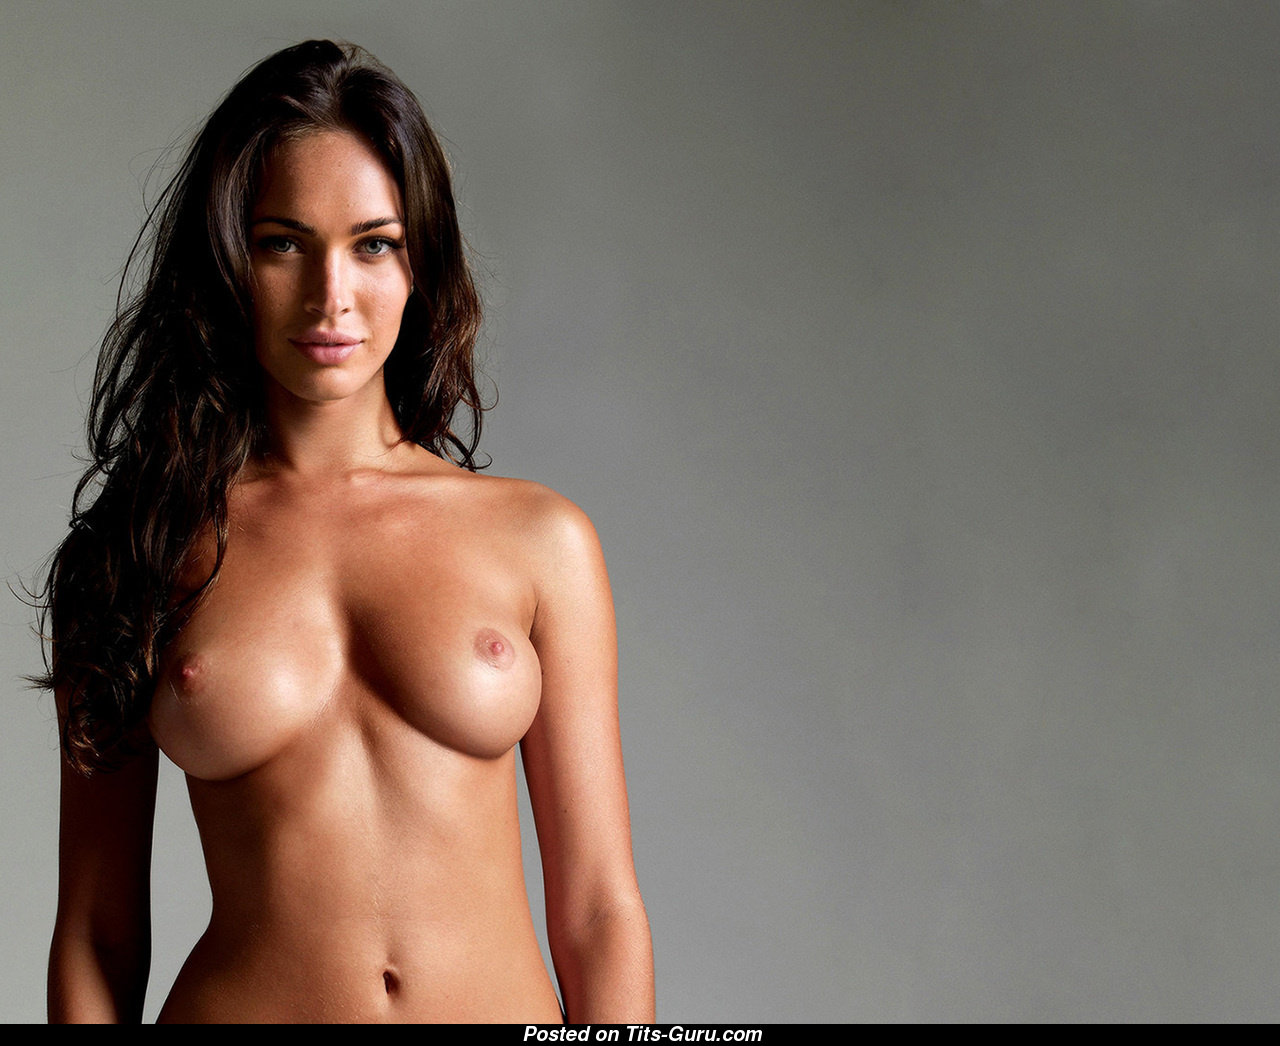 Nude megan fox boobs